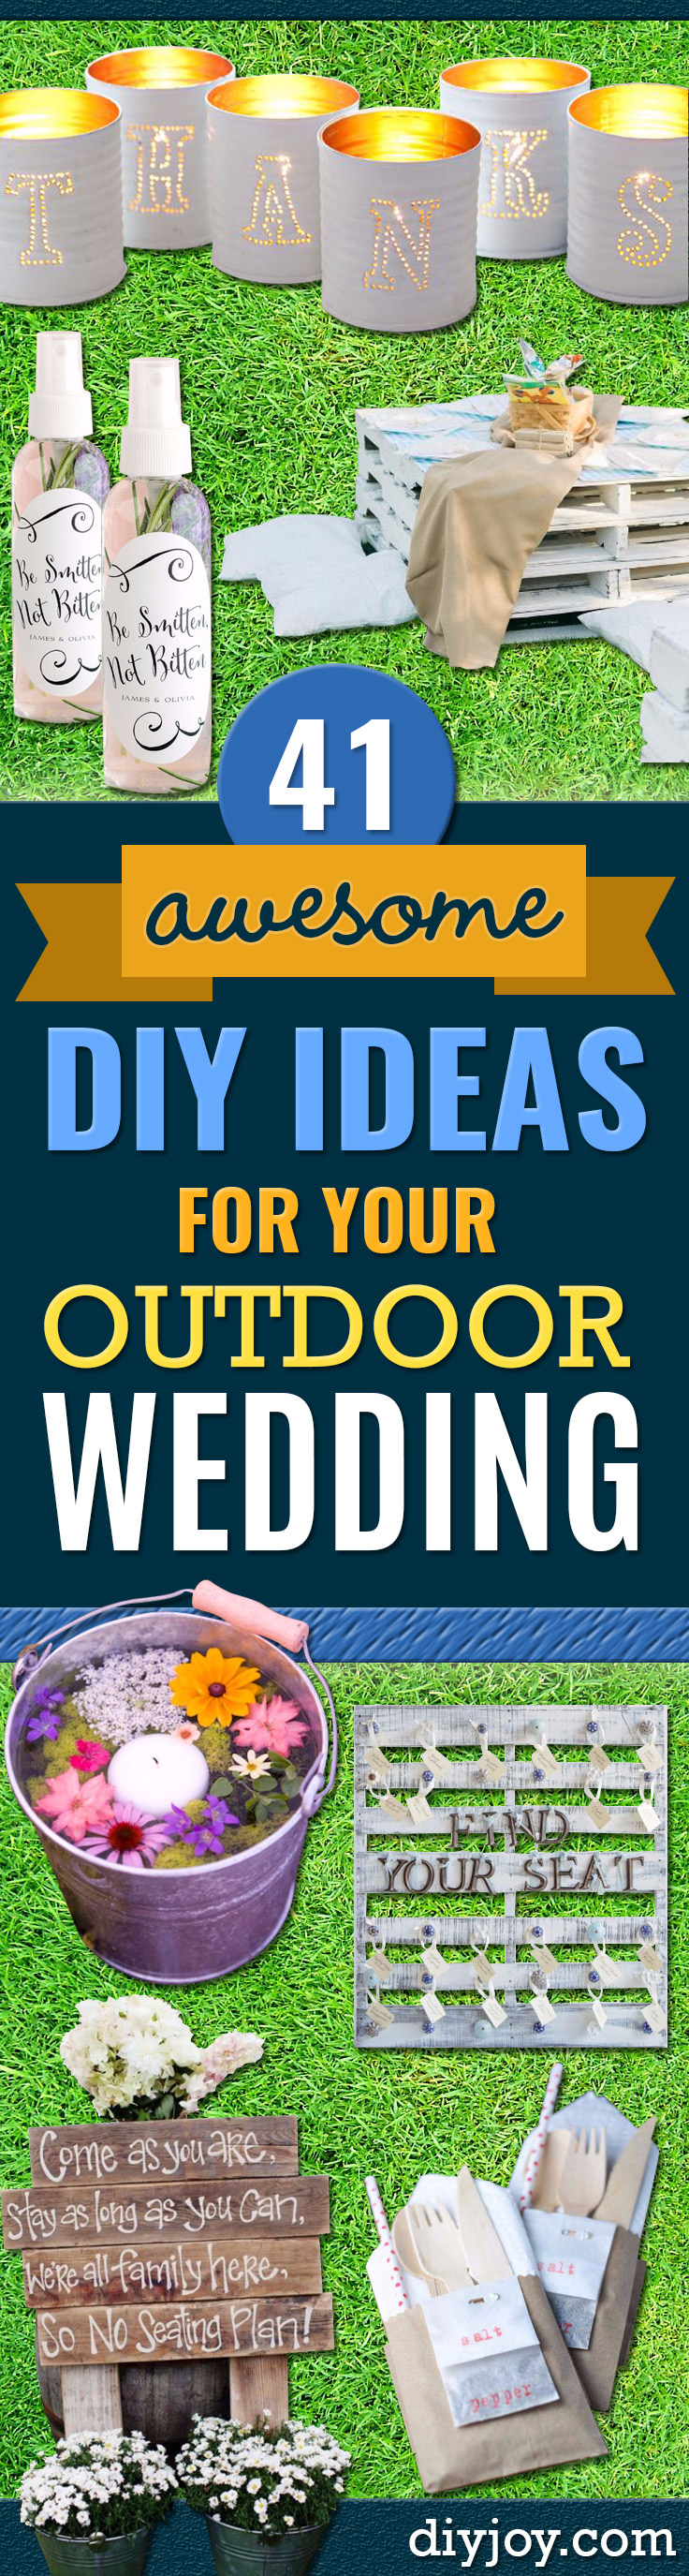 DIY Outdoors Wedding Ideas - Step by Step Tutorials and Projects Ideas for Summer Brides - Lighting, Mason Jar Centerpieces, Table Decor, Party Favors, Guestbook Ideas, Signs, Flowers, Banners, Tablecloth and Runners, Napkins, Seating and Lights - Cheap and Ideas DIY Decor for Weddings